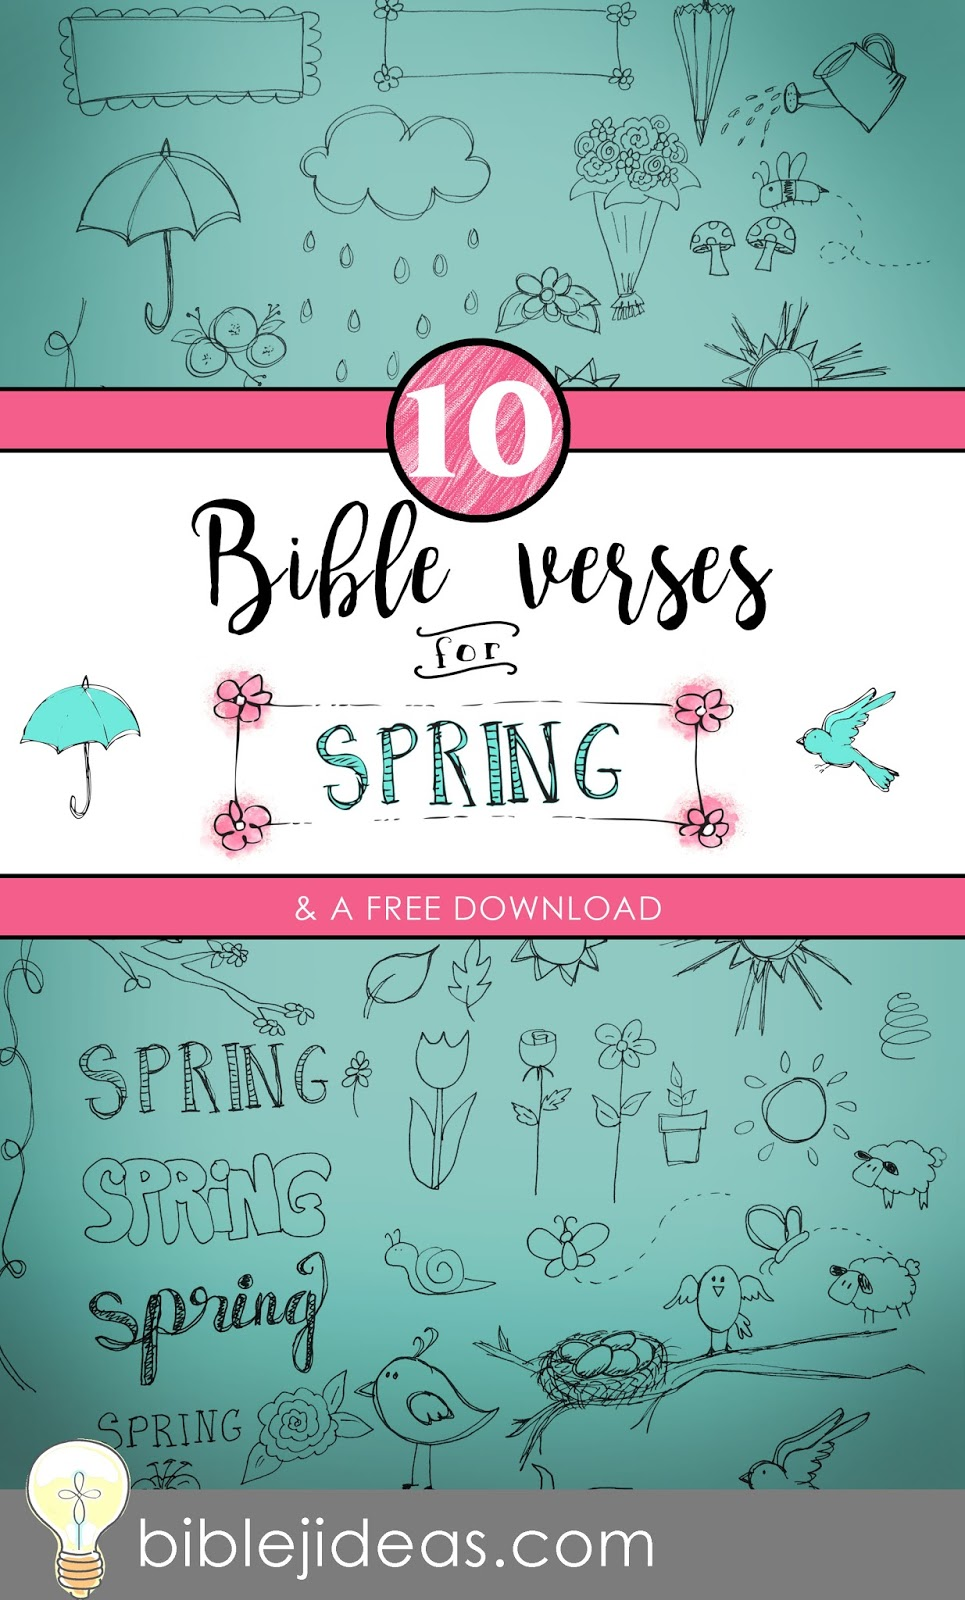 Bible Journaling Ideas: 10 Bible Verses for Spring